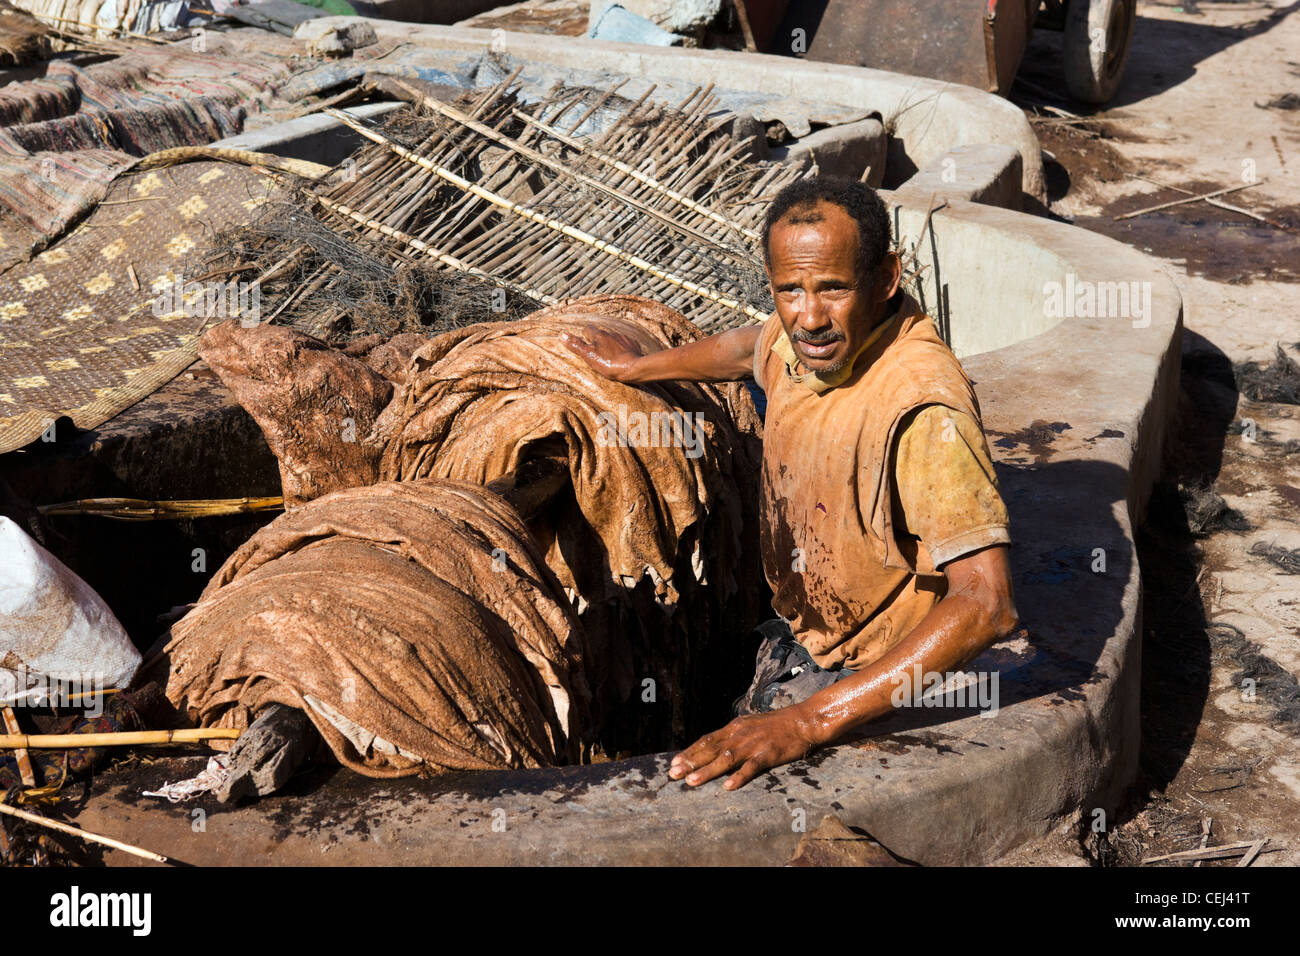 Local leather worker in the Tanneries, Medina district, Marrakech, Morocco, North Africa - Stock Image